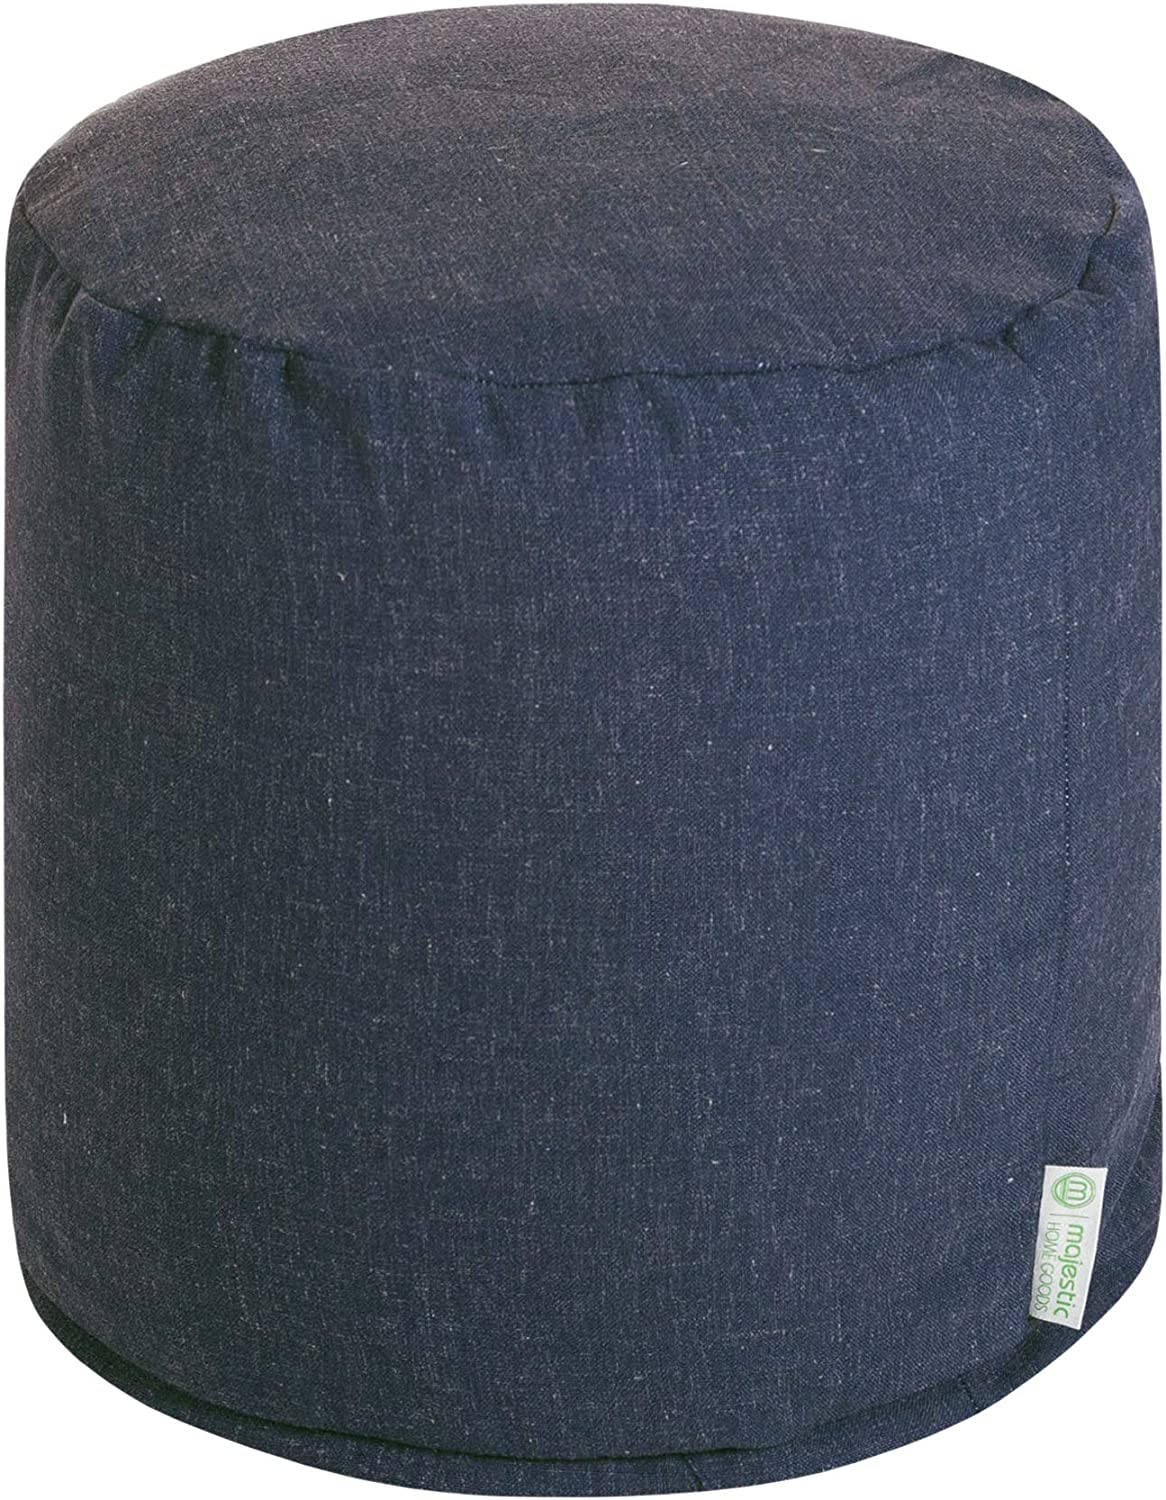 Majestic Home Goods Navy Wales Small Pouf